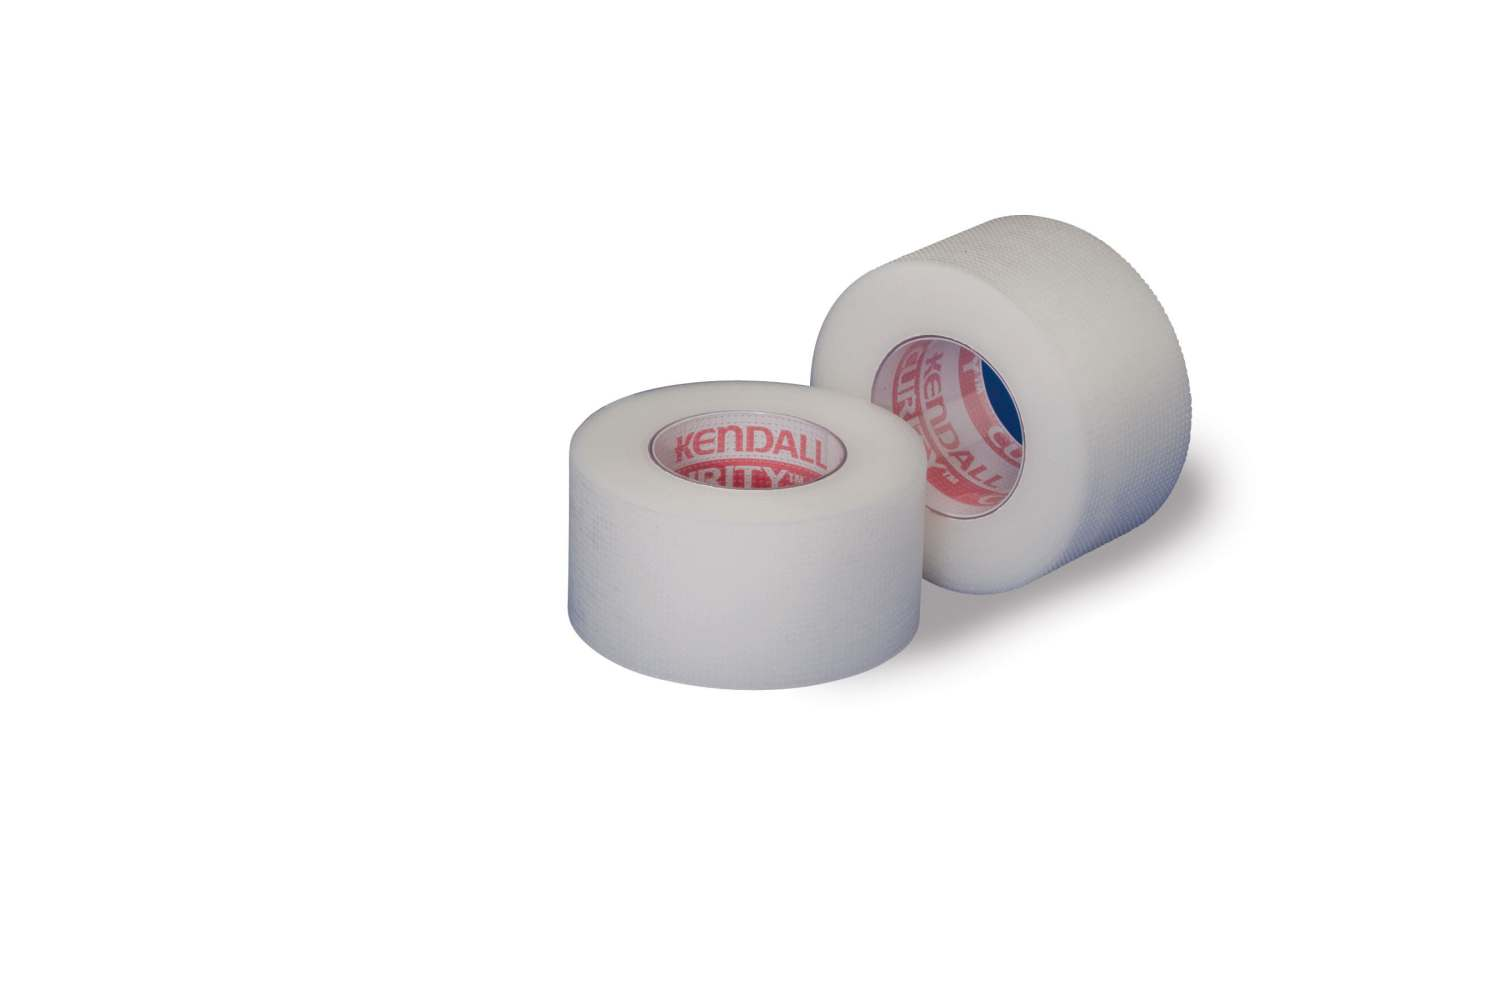 Kendall Cuirty Hypoallergenic Clear Tape - Clr 1